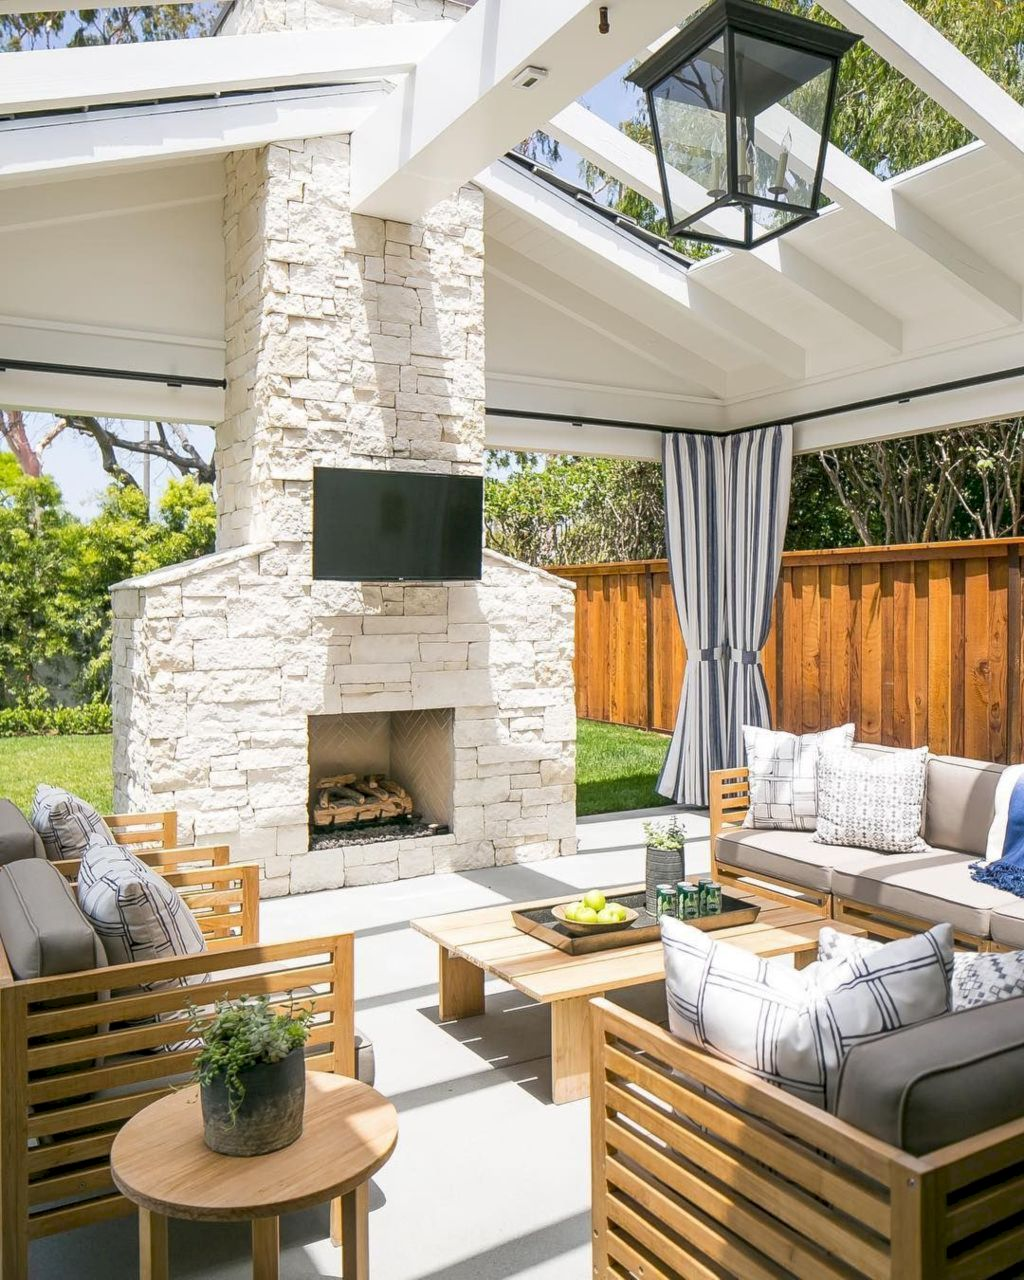 https://elonahome.com/wp-content/uploads/2019/01/Open-living-space-and-porch-design-as-special-space-to-gather-and-enjoy-your-landscape-21.jpg